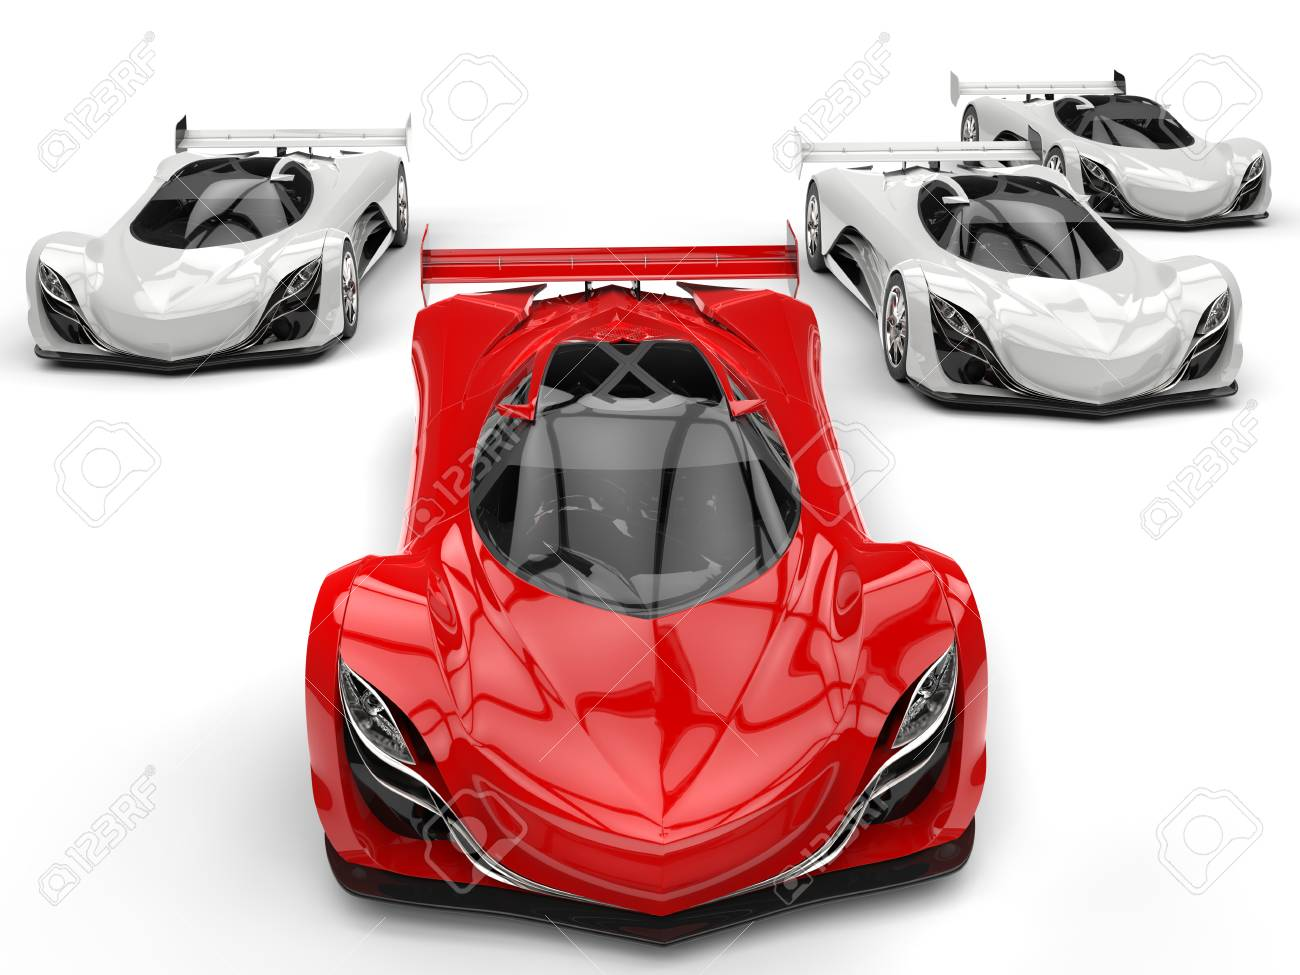 Futuristic Concept Race Sports Cars Racing   Red In Front Of All The White  Ones Stock